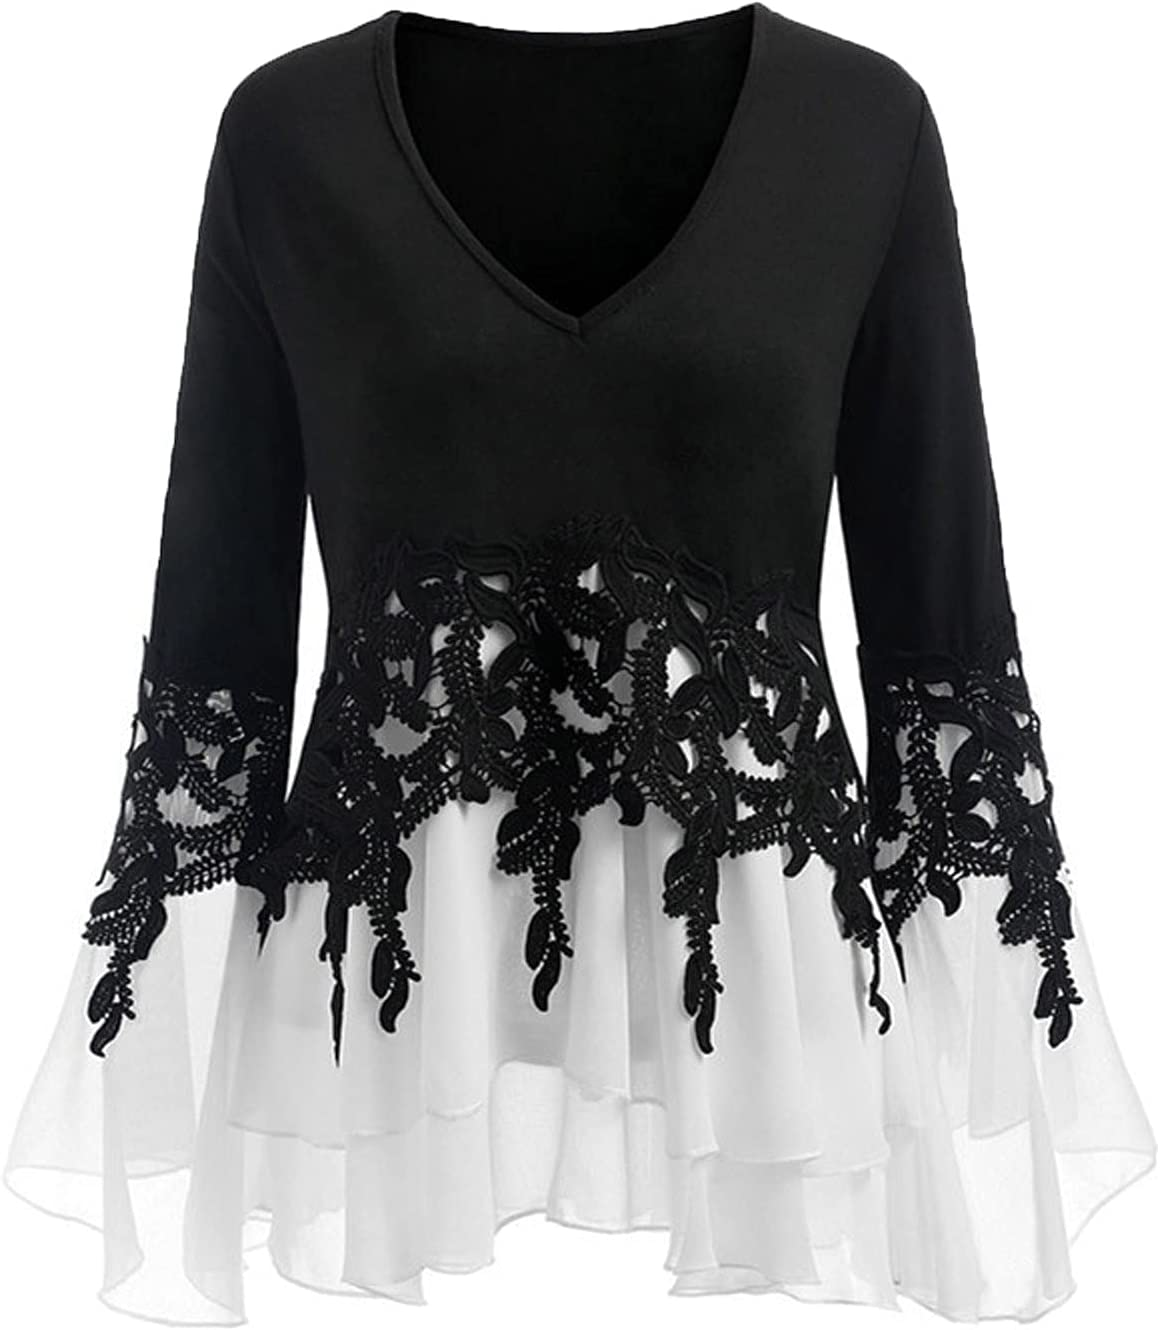 Womens Tops V-Neck Chiffon Hem Shirt Industry No. 1 Pul Hollow Decored trend rank Out Lace